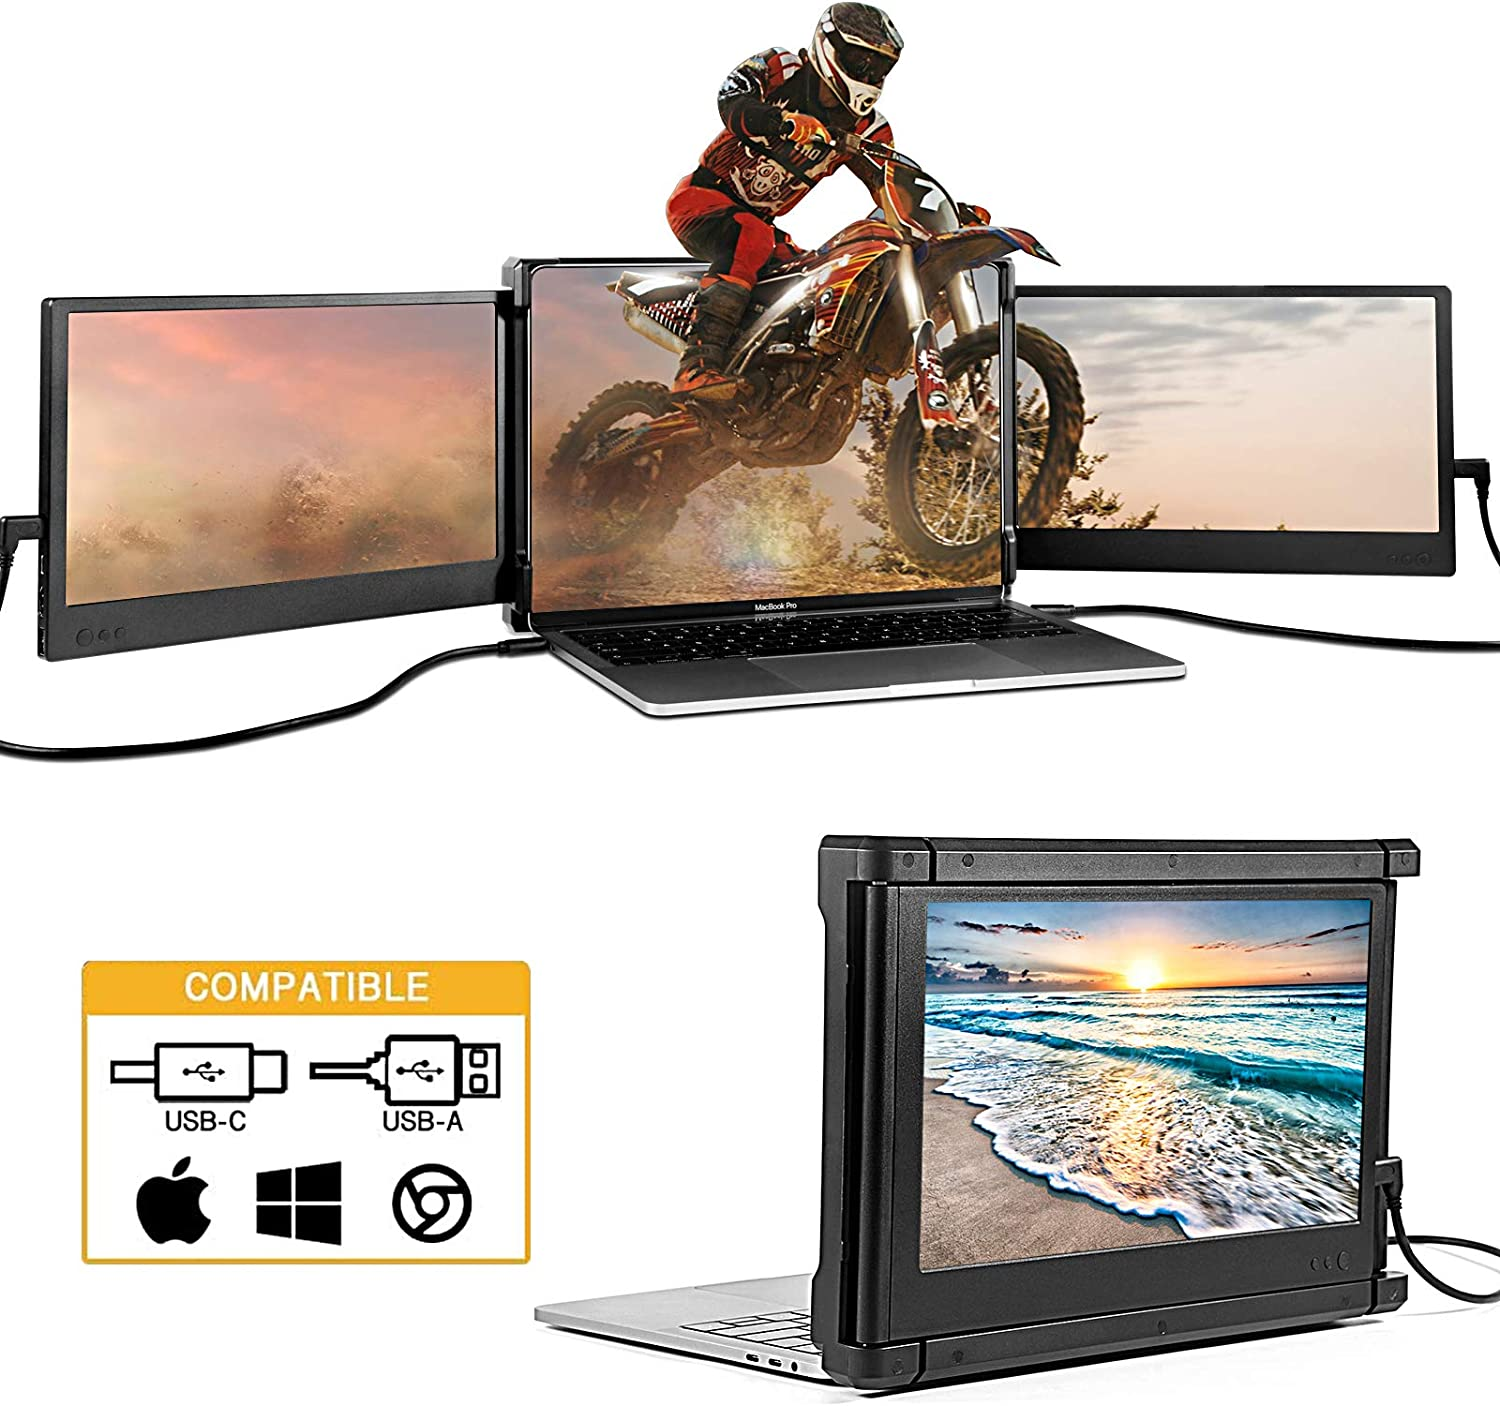 Dual Portable Monitor, Triple Screen Extended for Laptop, 11.6